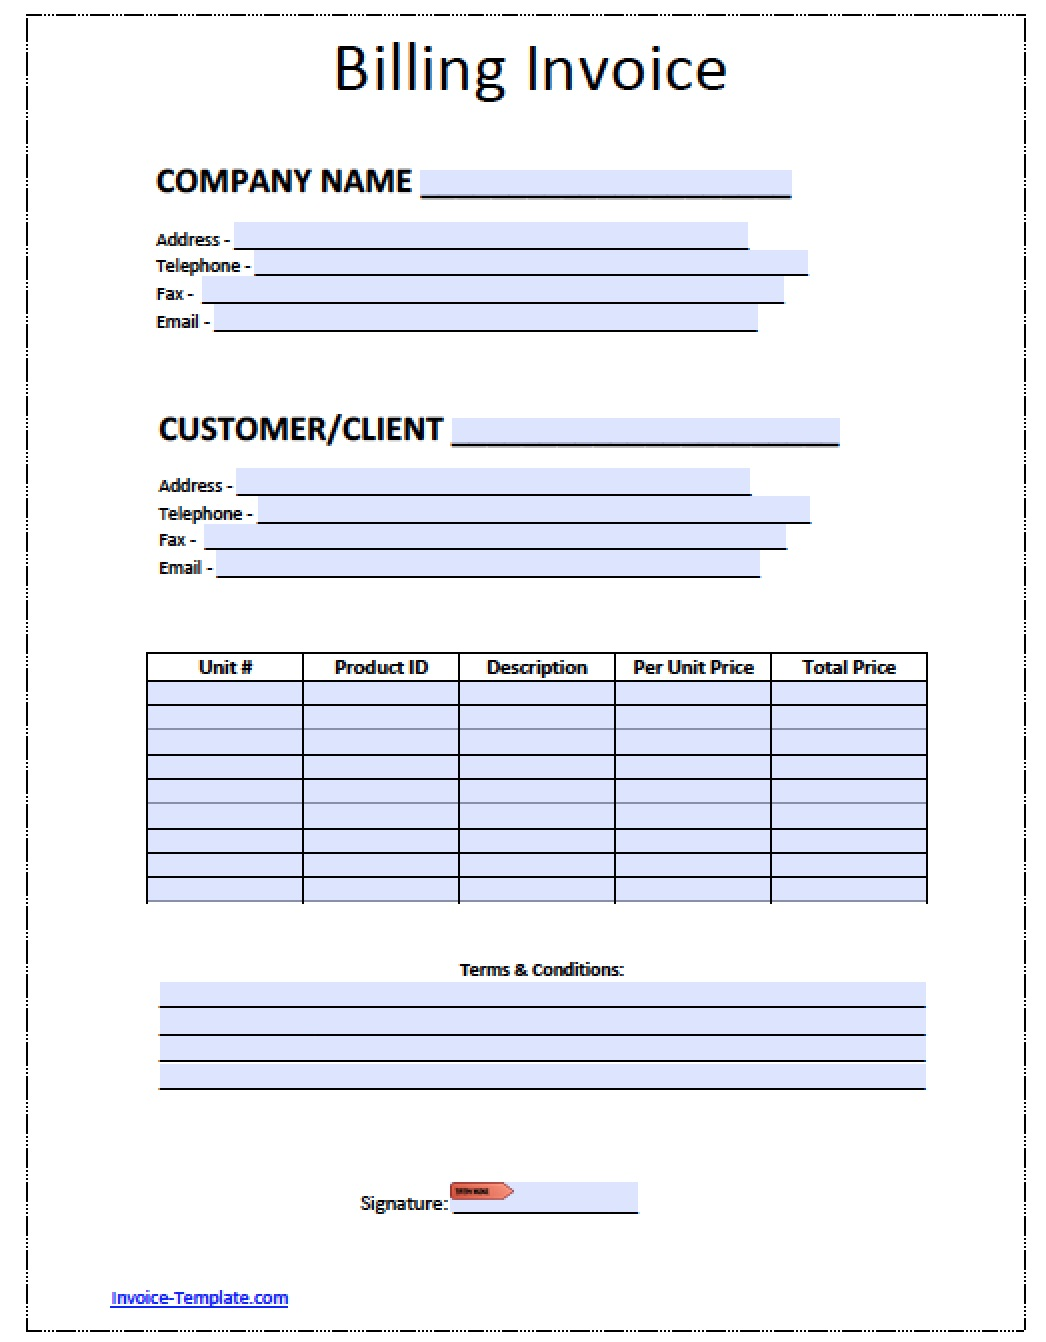 Darkfaderus  Terrific Billing Invoice Invoices Faq U Cloudflare Support Billing  With Engaging Free Billing Invoice Template  Excel  Pdf  Word Doc  Billing With Lovely Hsbc Invoice Financing Also Ato Invoice Template In Addition Net Terms On Invoice And Invoice Declaration As Well As Sample Of Sales Invoice Additionally Express Invoice Serial From Happytomco With Darkfaderus  Engaging Billing Invoice Invoices Faq U Cloudflare Support Billing  With Lovely Free Billing Invoice Template  Excel  Pdf  Word Doc  Billing And Terrific Hsbc Invoice Financing Also Ato Invoice Template In Addition Net Terms On Invoice From Happytomco